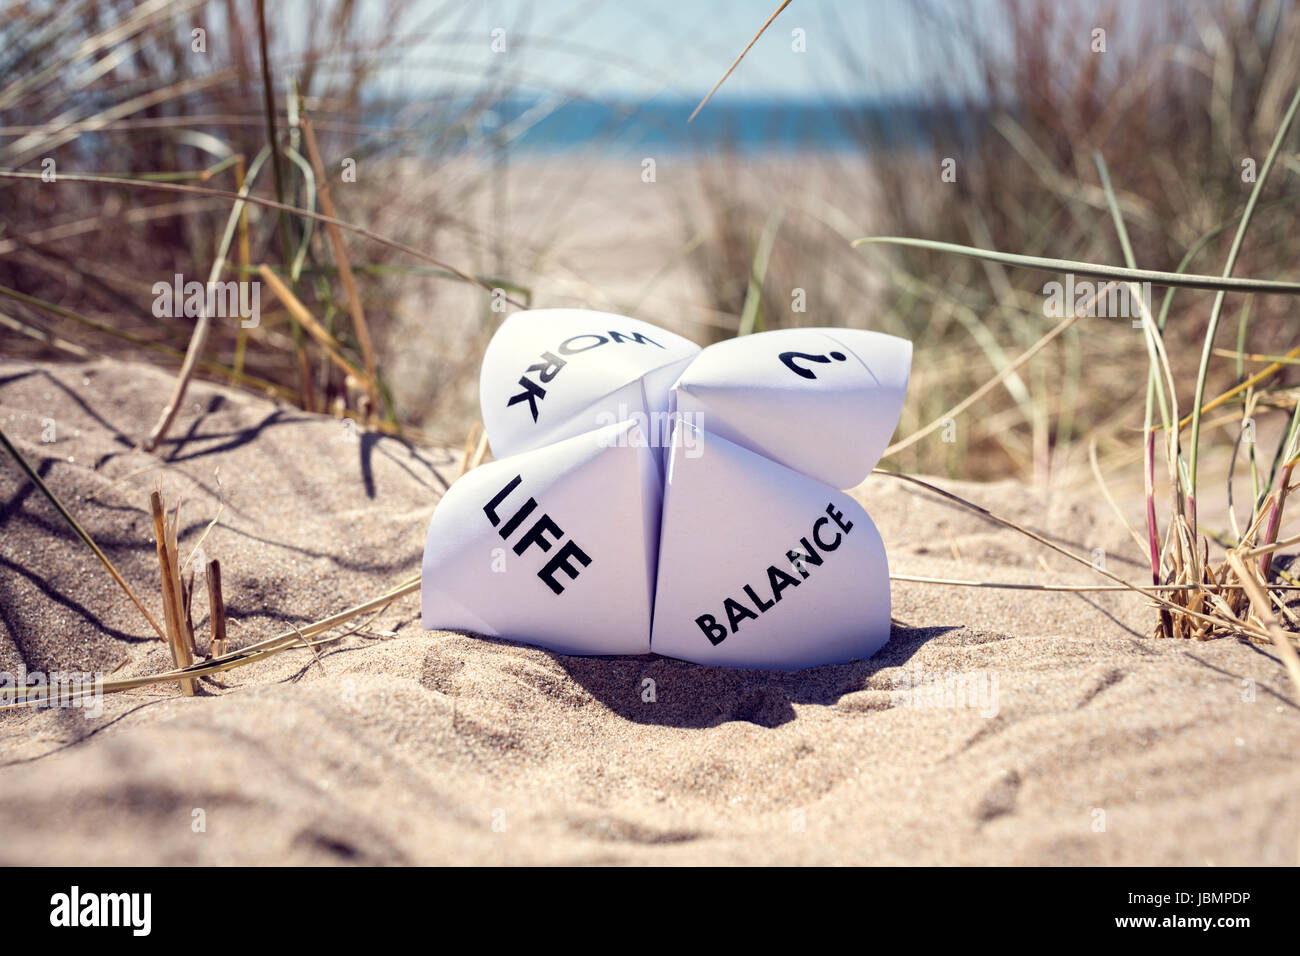 Origami fortune teller on vacation at the beach concept for work life balance choices - Stock Image